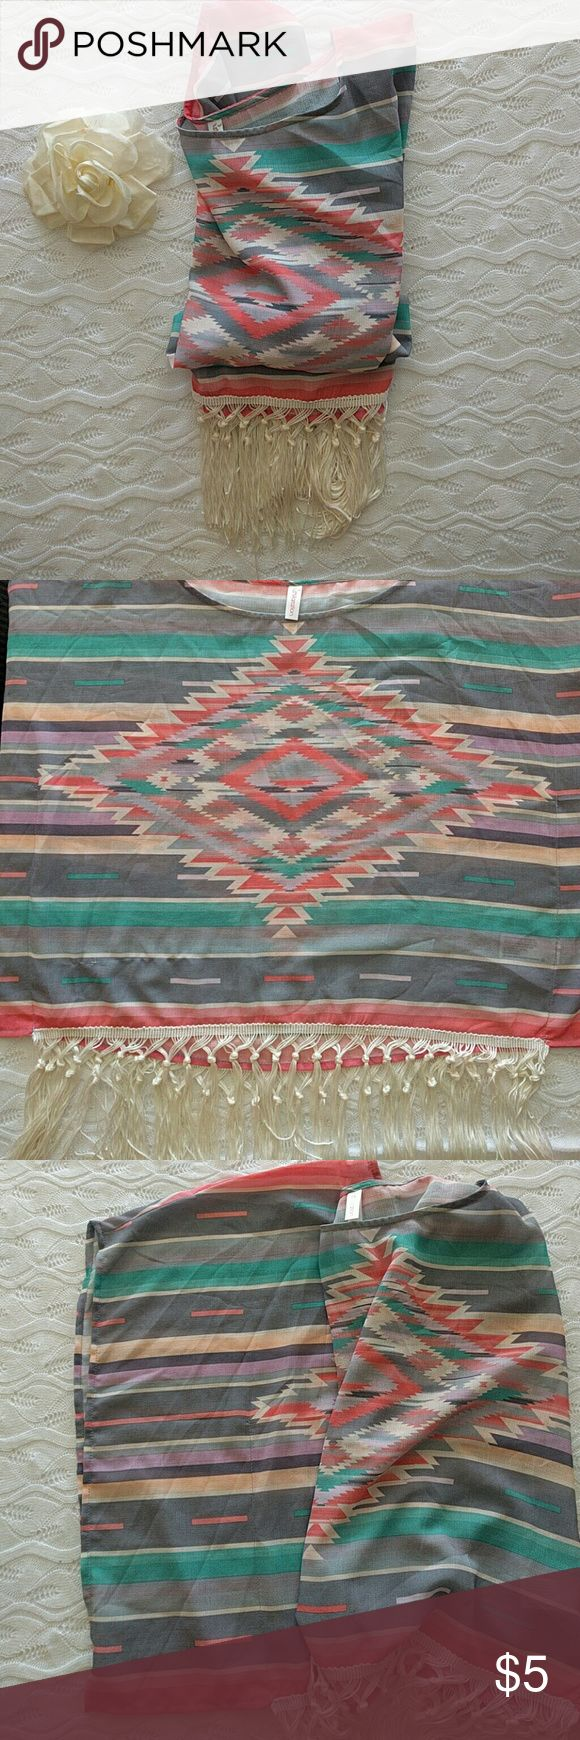 Aztec Sheer Tassel Flowy Top XS Like New, worn once Beautiful Aztec Print and Colors Loose Fitting, can work for Size Small too Xhilaration Tops Blouses